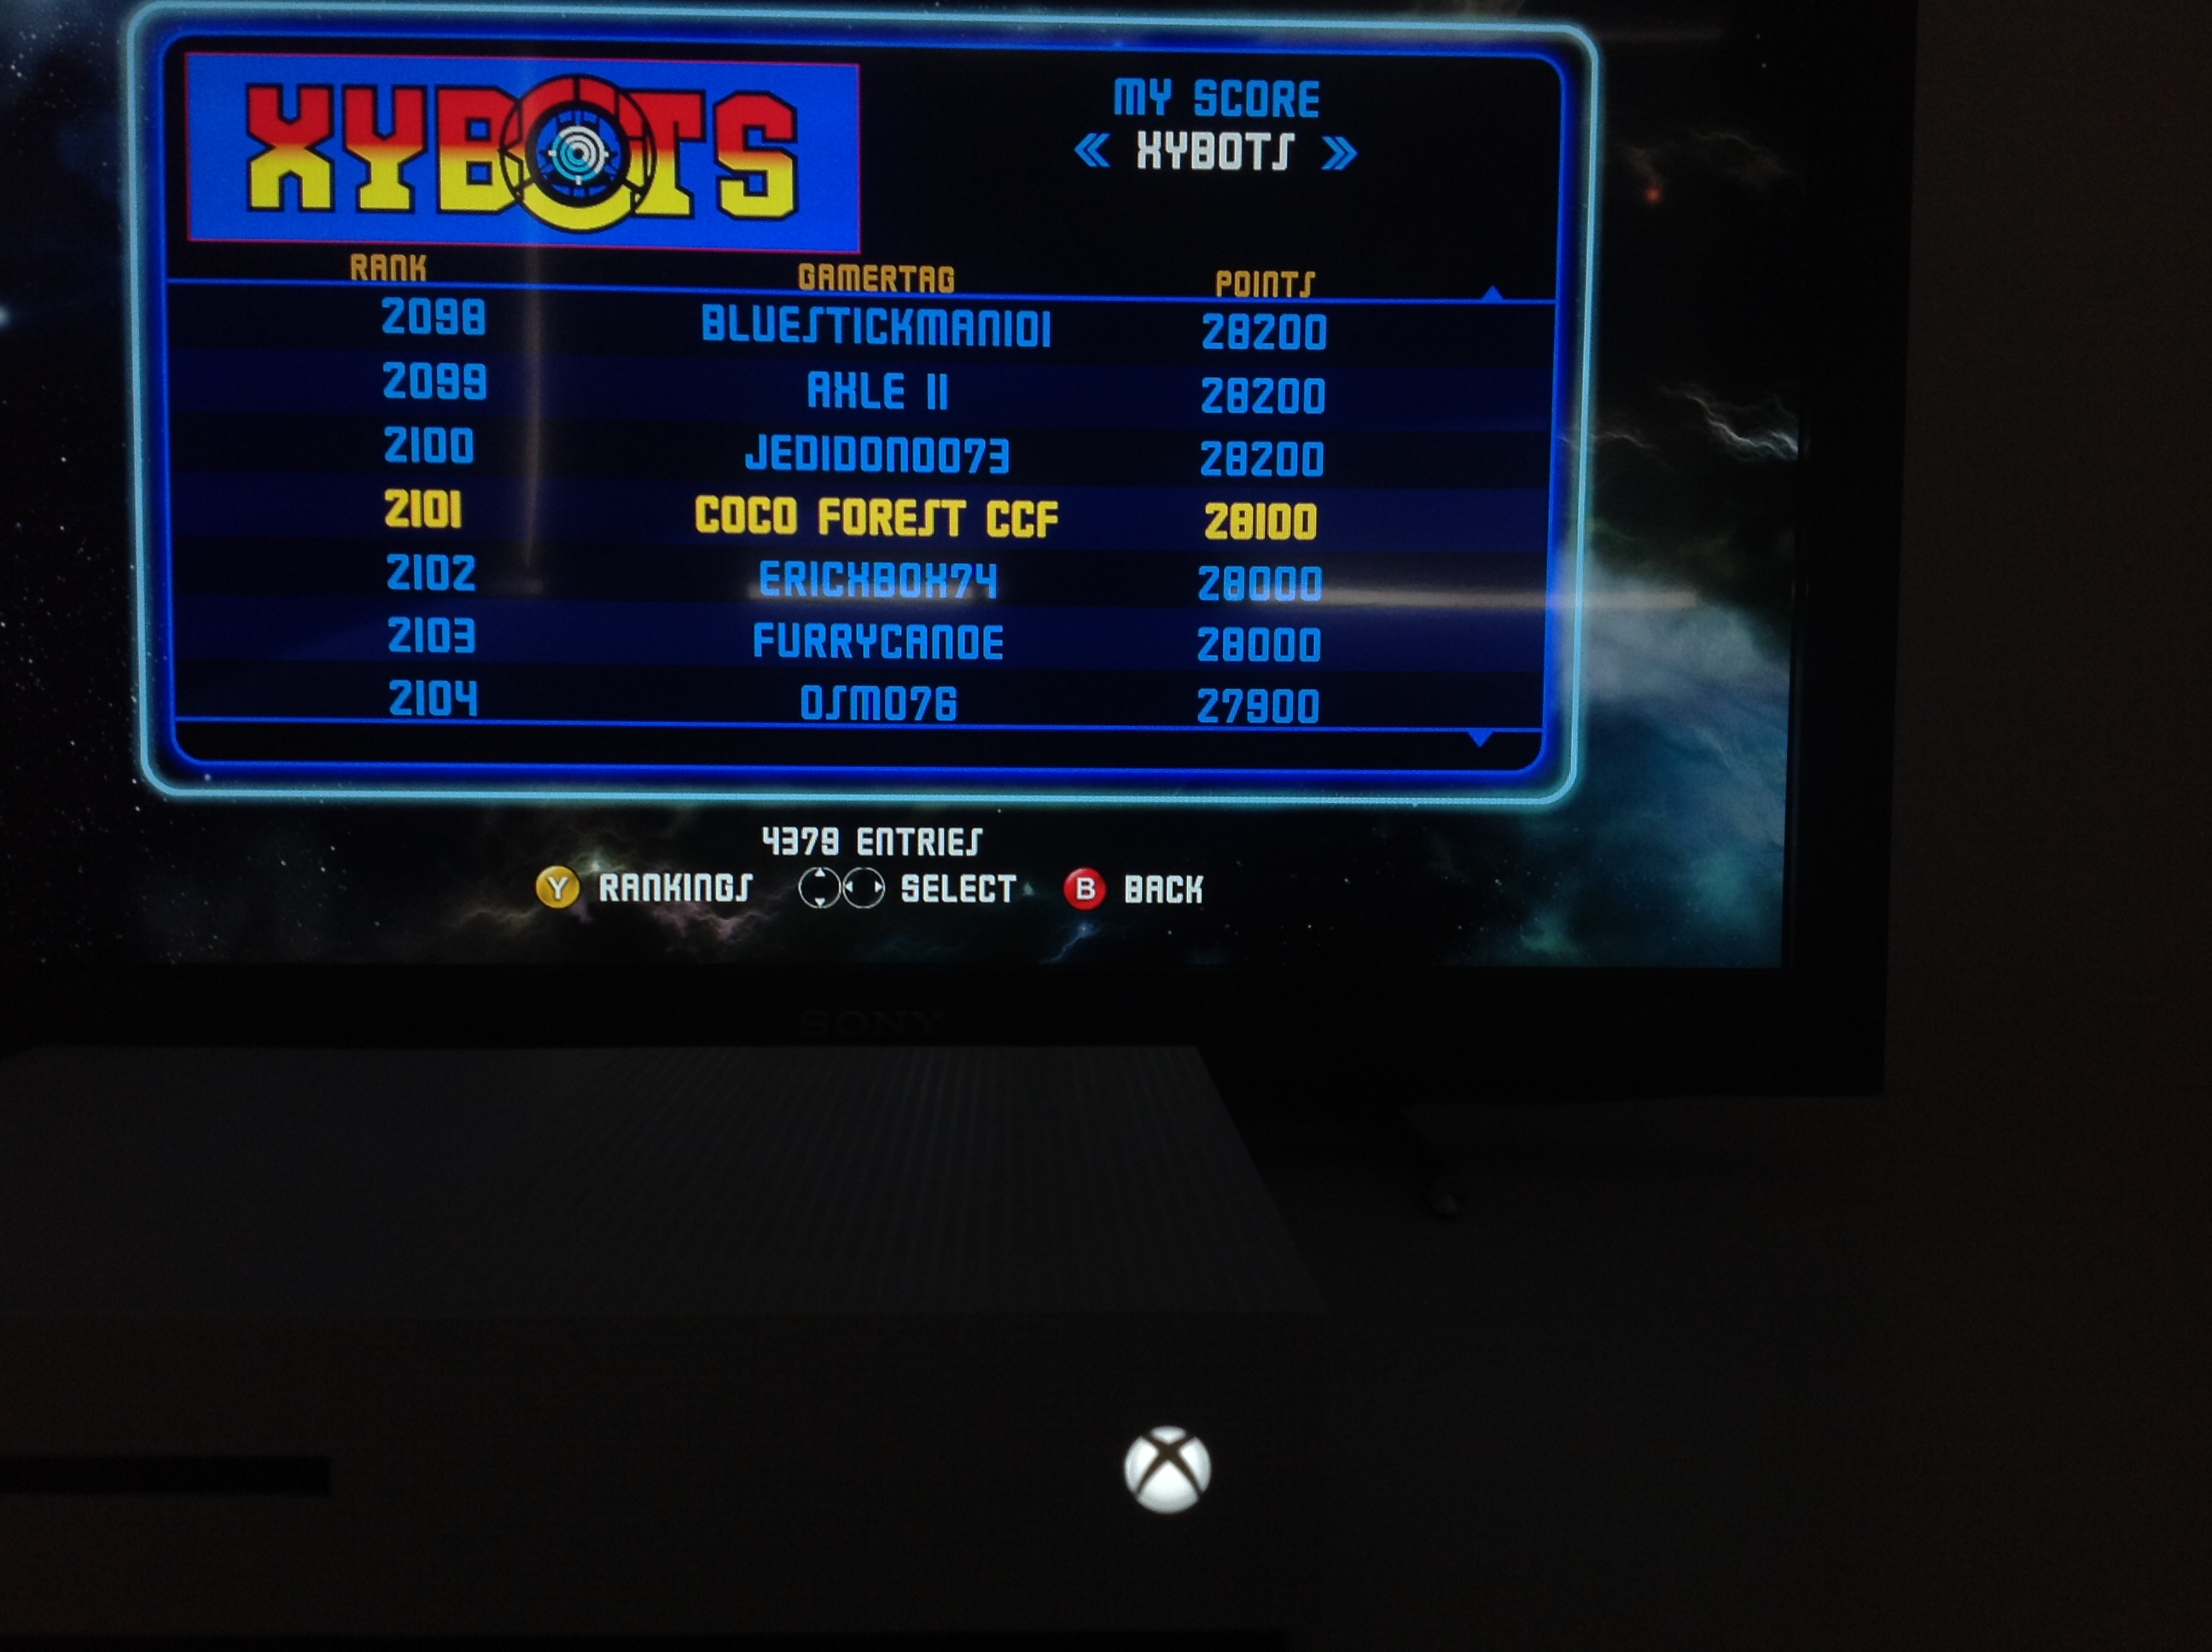 CoCoForest: Midway Arcade Origins: Xybots (Xbox 360) 28,100 points on 2019-05-26 01:43:57